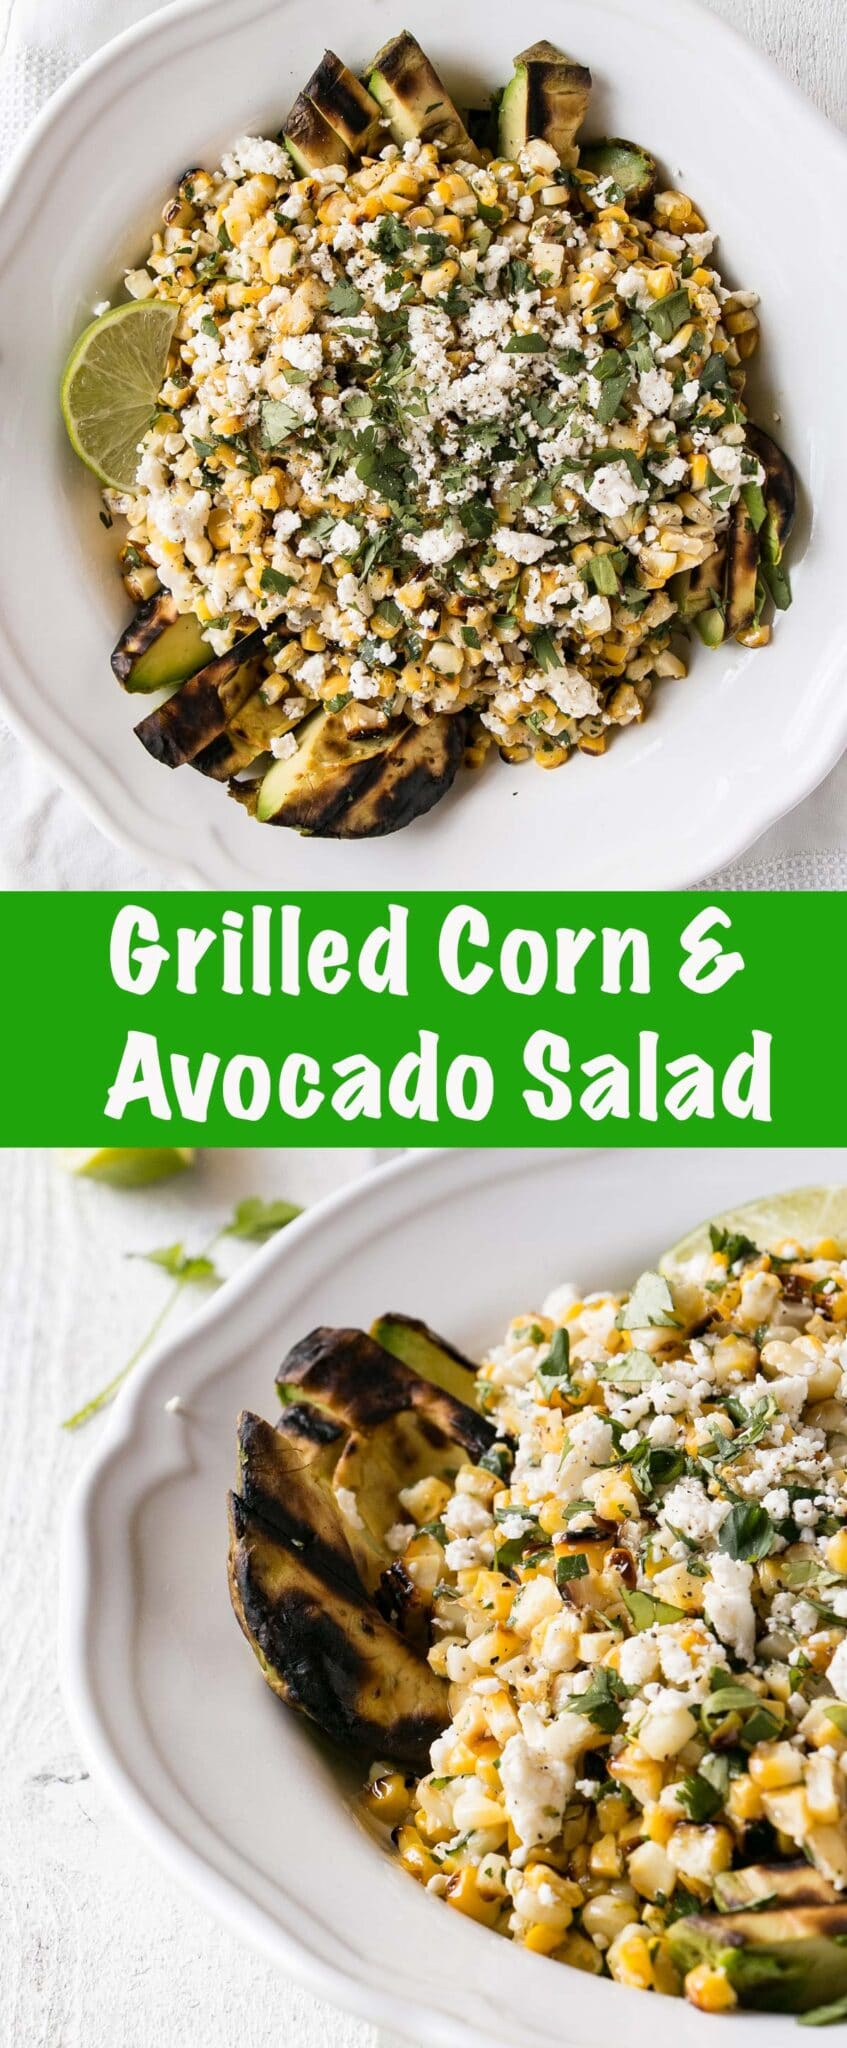 Grilled Corn and Avocado Salad long collage